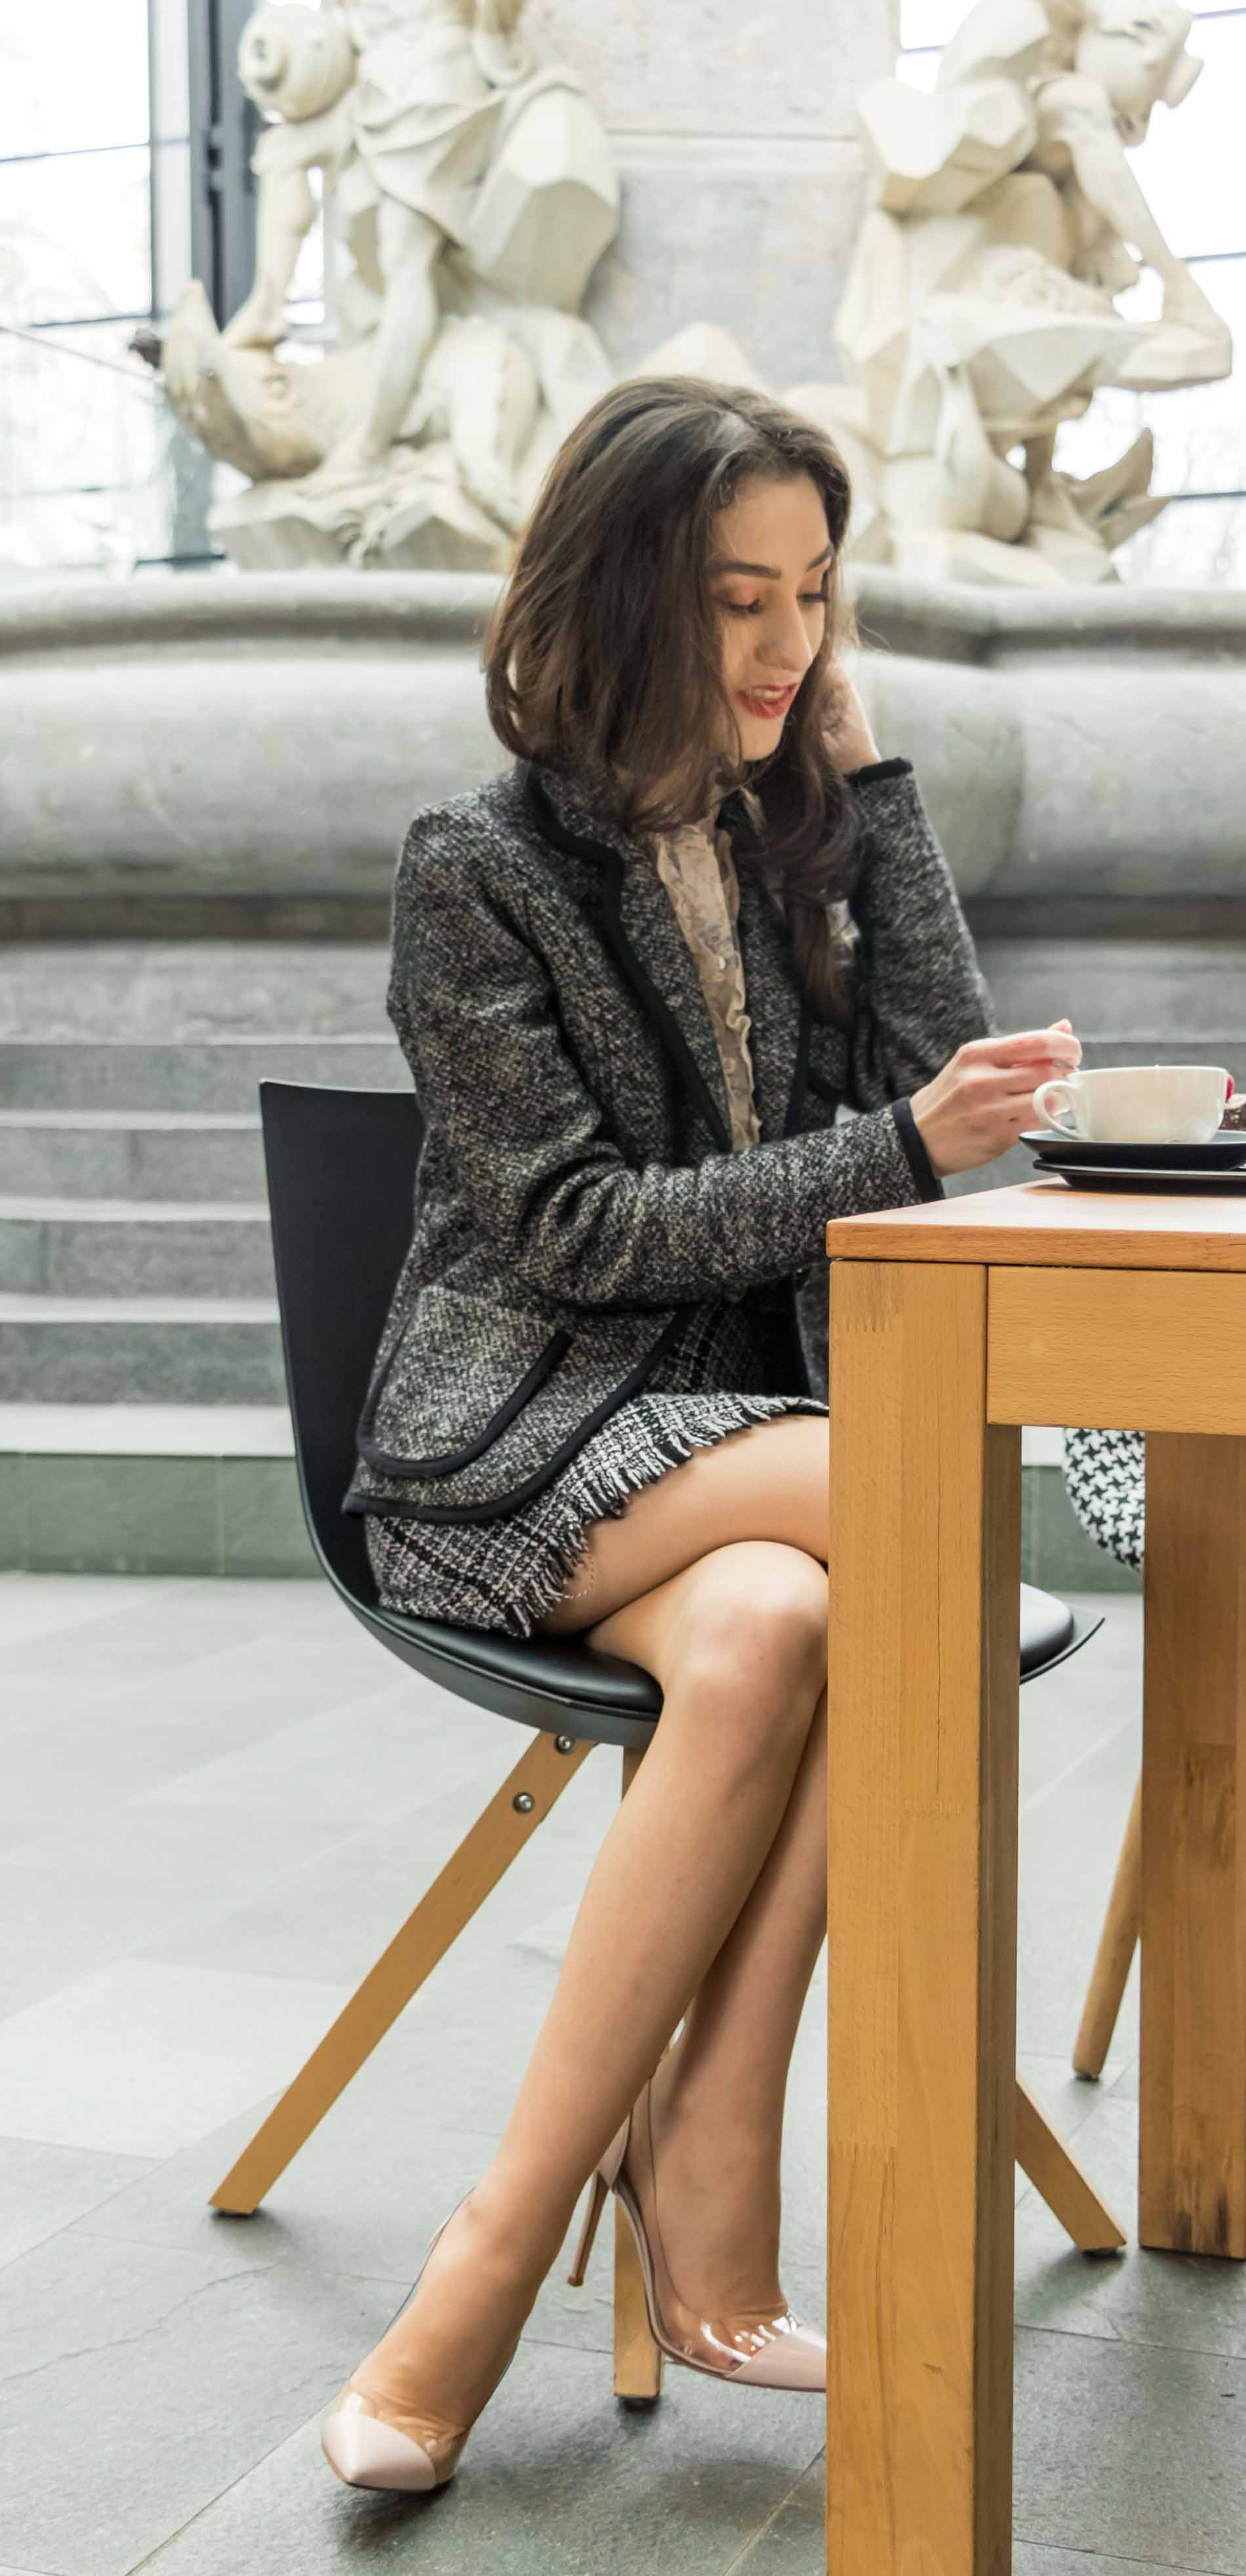 Fashion Blogger Veronika Lipar of Brunette from Wall Street dressed in tweed plaid mini skirt from Storets, black and white Marella tweed jacket, blush Gianvito Rossi Plexi 100 leather and PVC pumps, while drinking tea